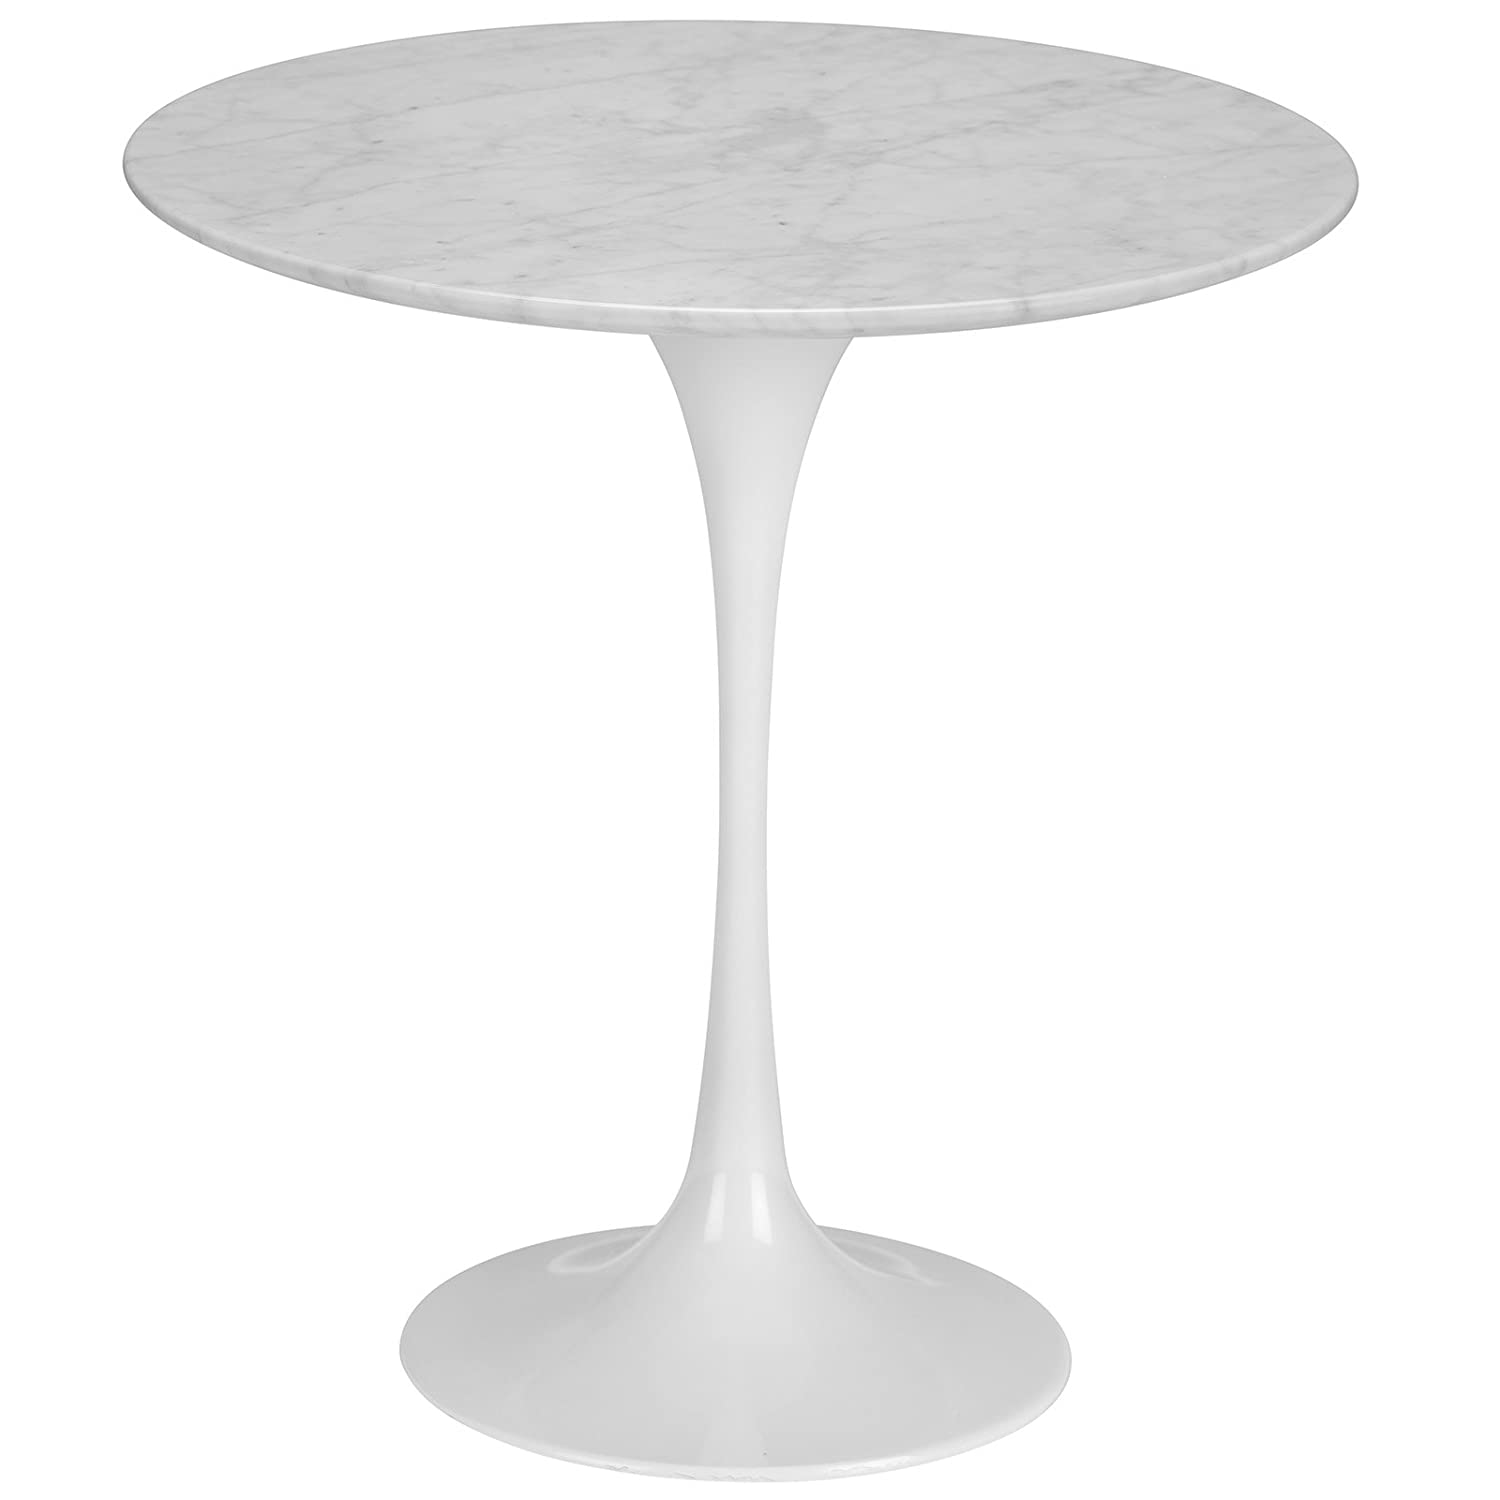 Amazoncom Poly And Bark Daisy Marble Side Table In White Base - Saarinen table base for sale